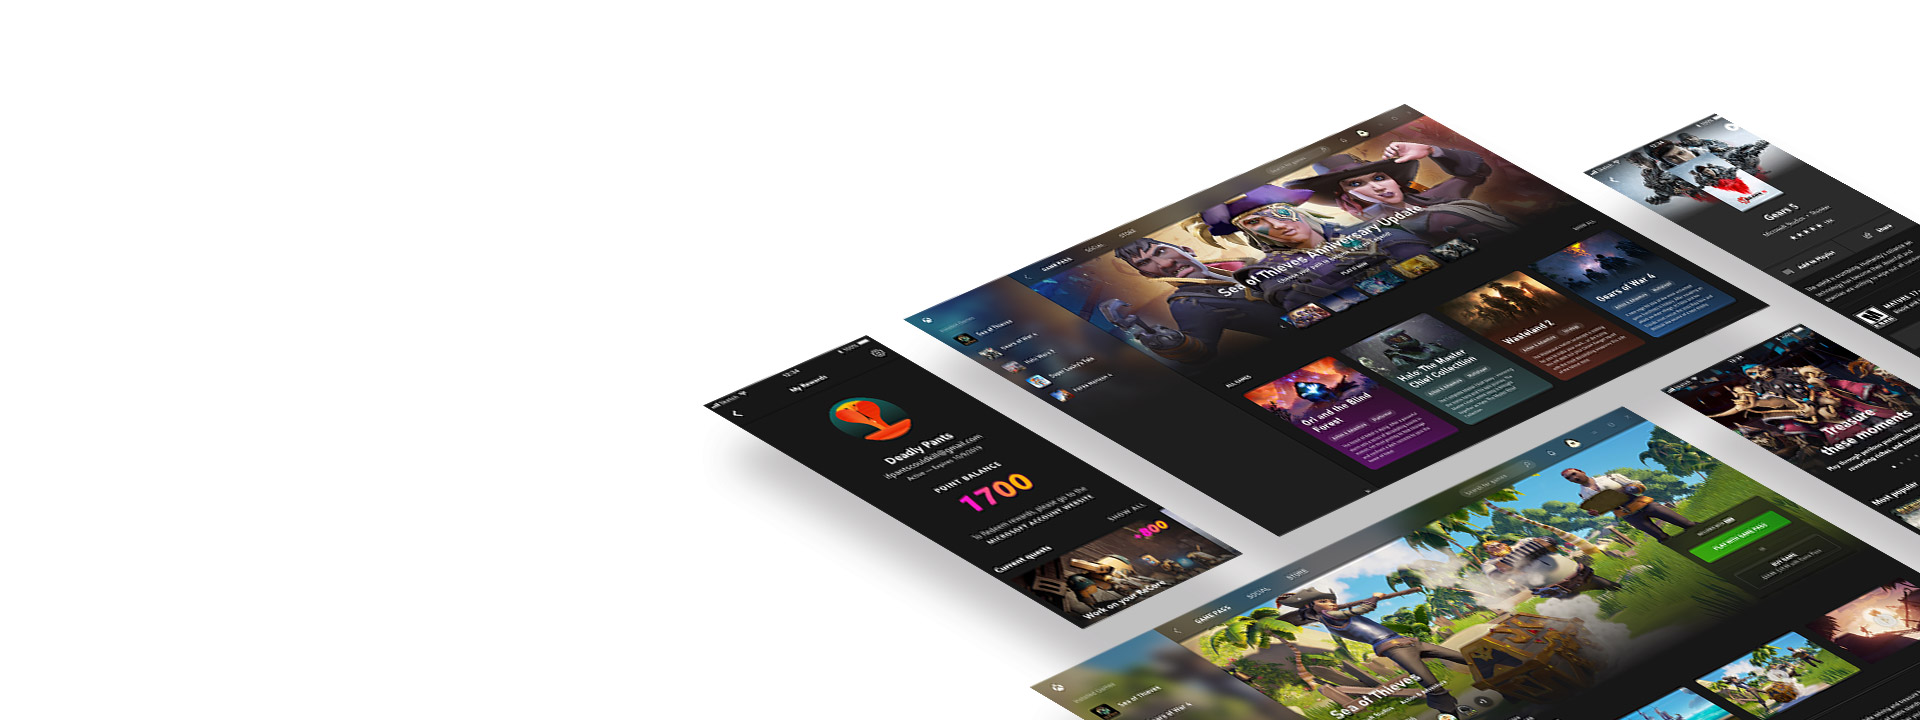 Écrans mobiles flottant dans l'application Xbox Game Pass